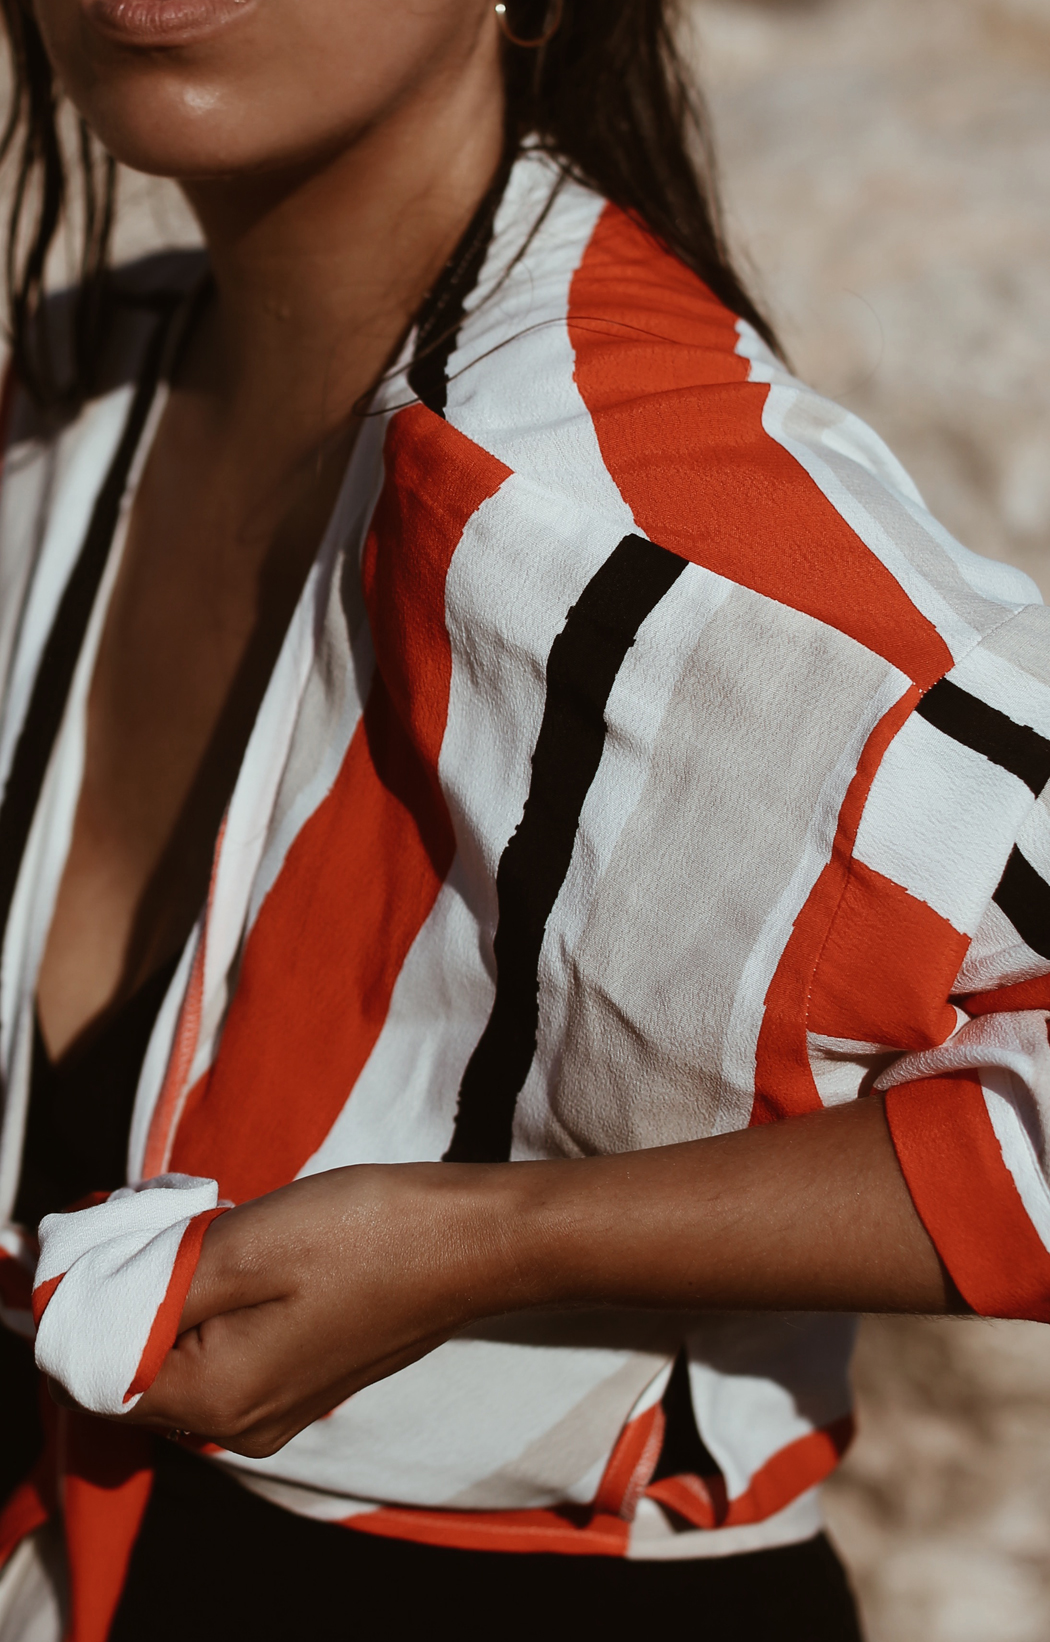 The Dashing Rider & Other Stories Blouse in Antibes